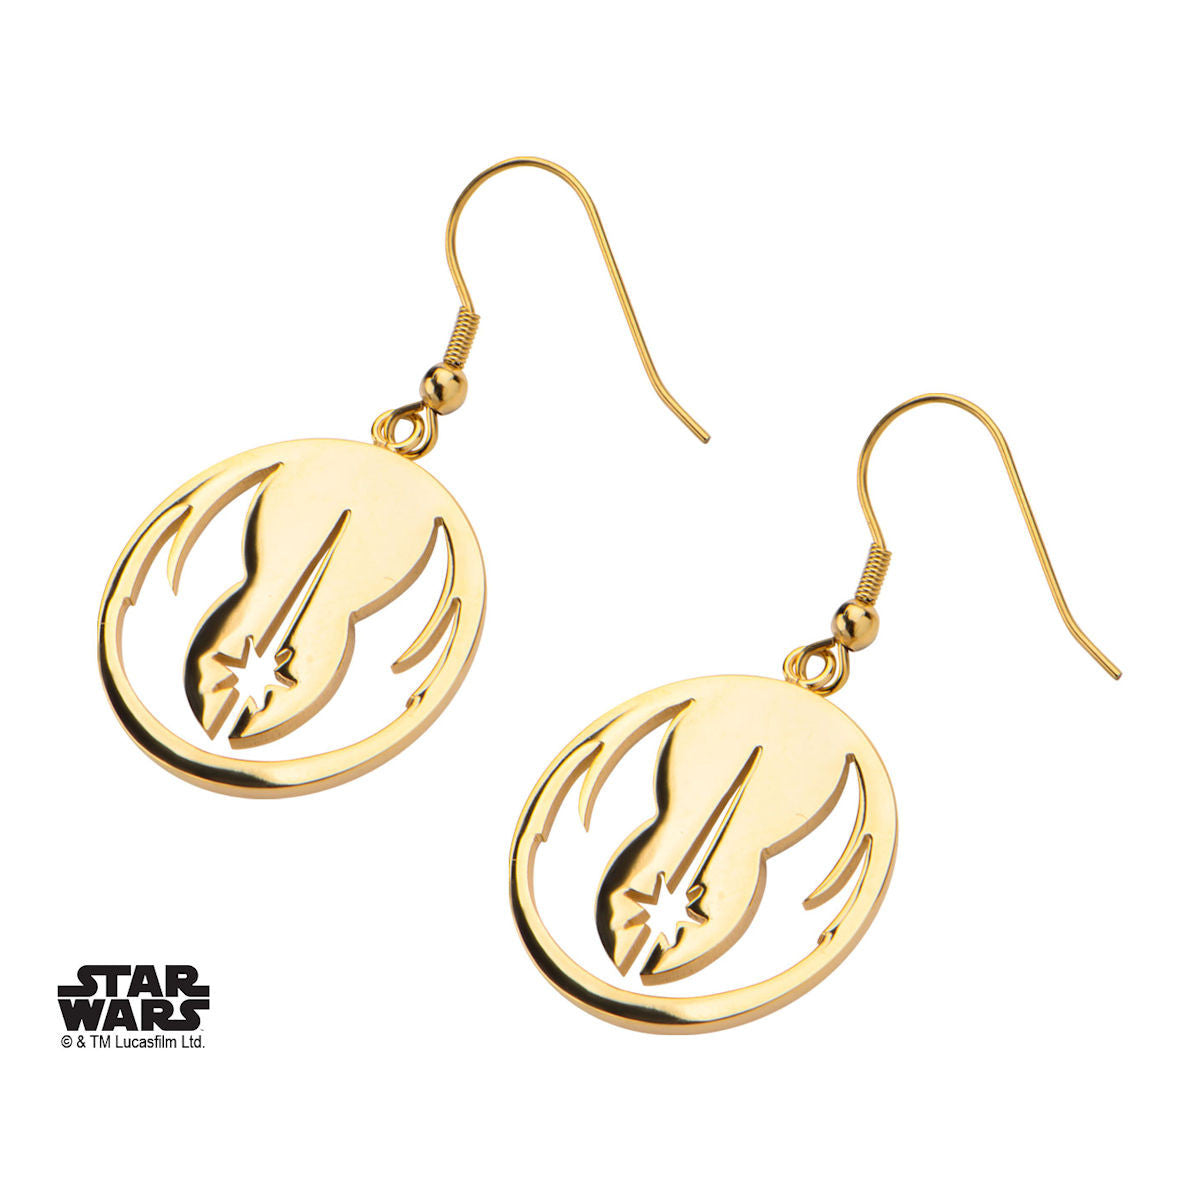 Star wars jedi order symbol hook dangle earrings 316 steel gold star wars jedi order symbol hook dangle earrings 316 steel gold pvd plated trustmark biocorpaavc